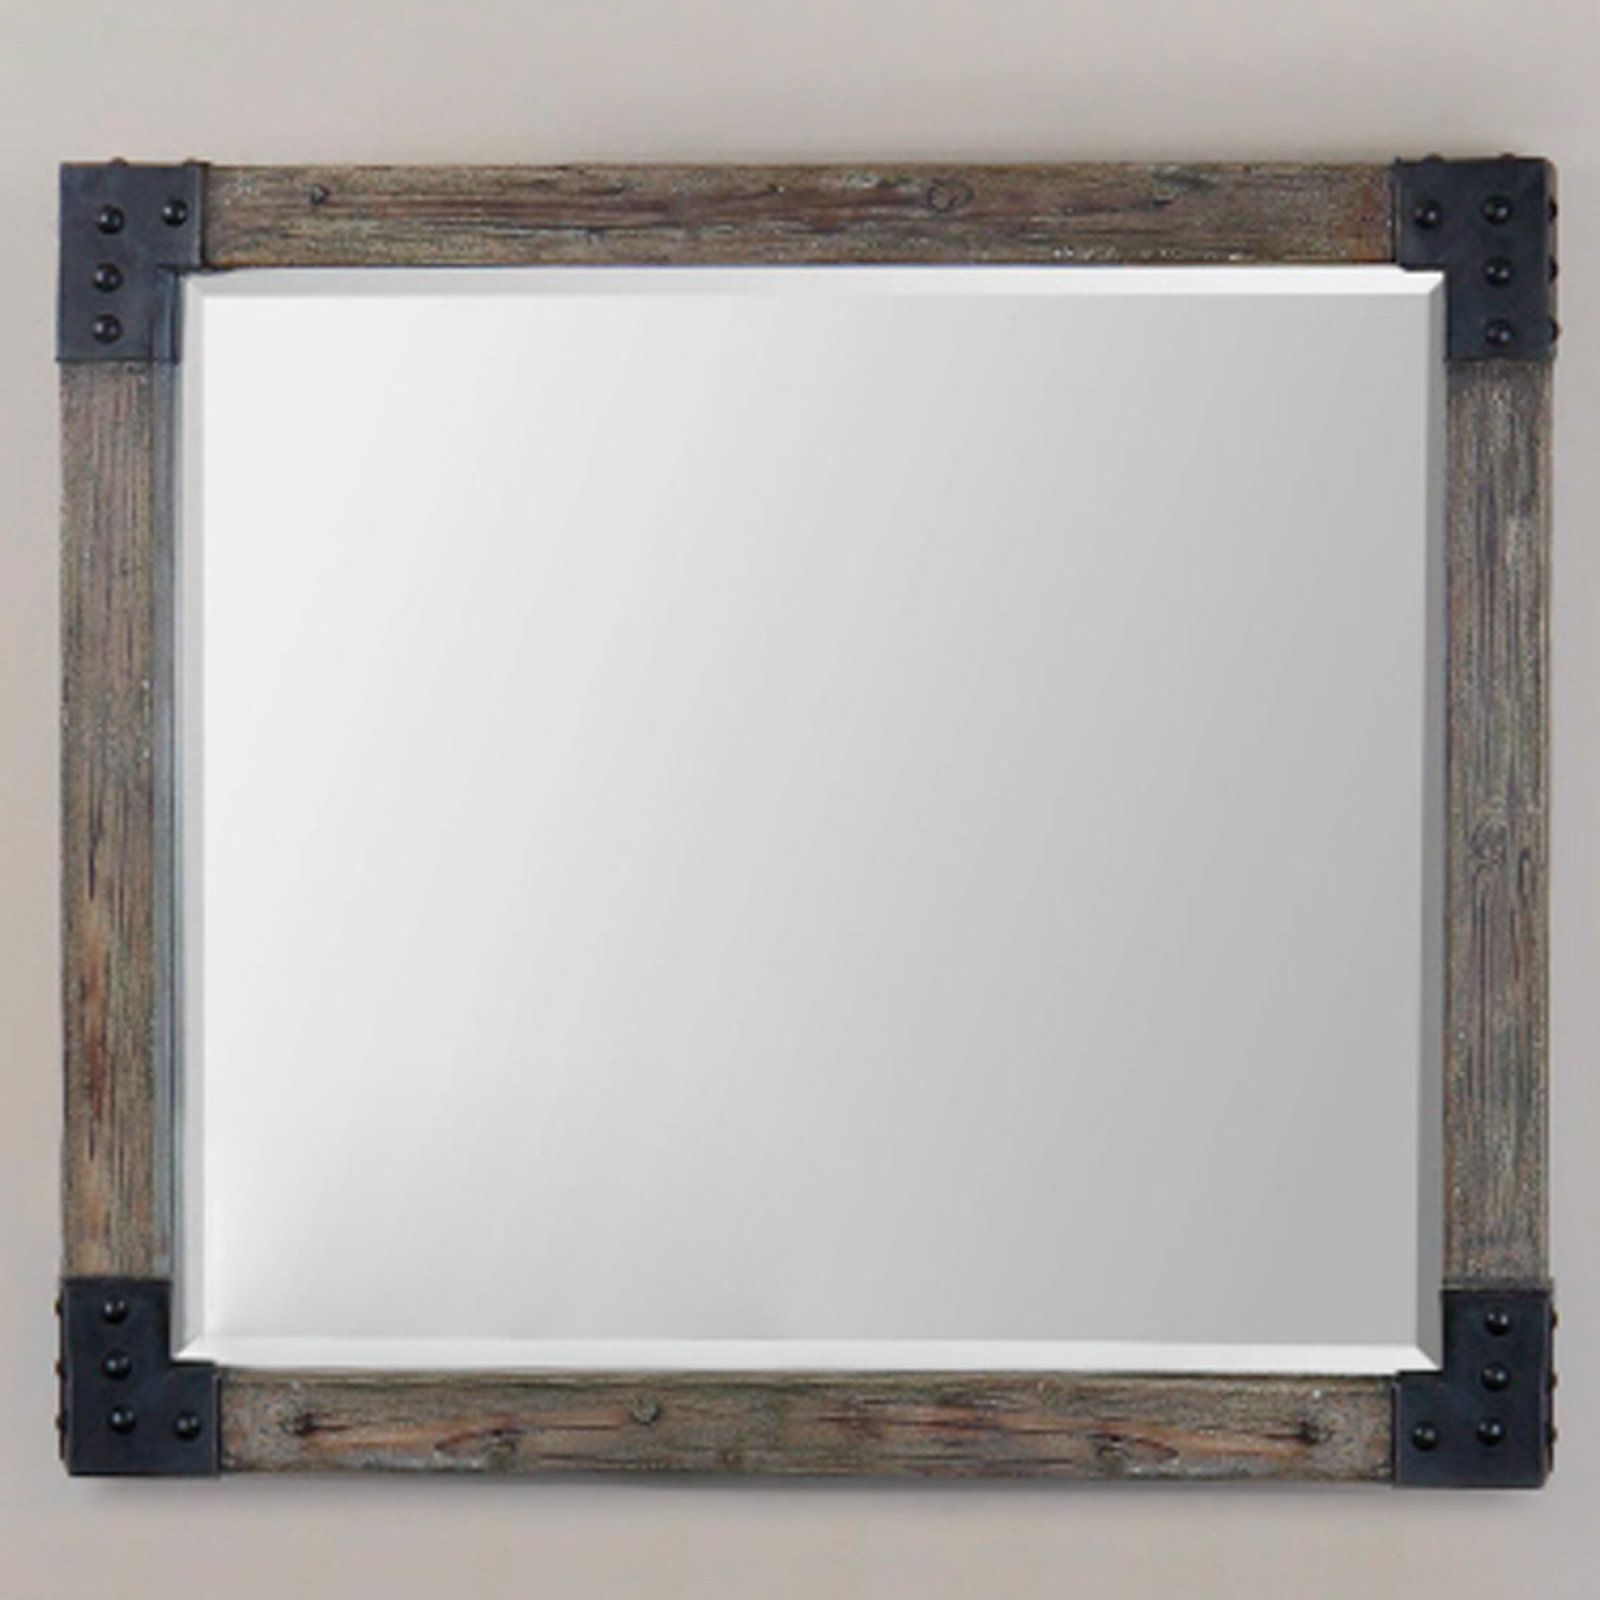 two bathroom framed of vanity makeup under wood inspirational new cabinet pictures gray weathered ideas